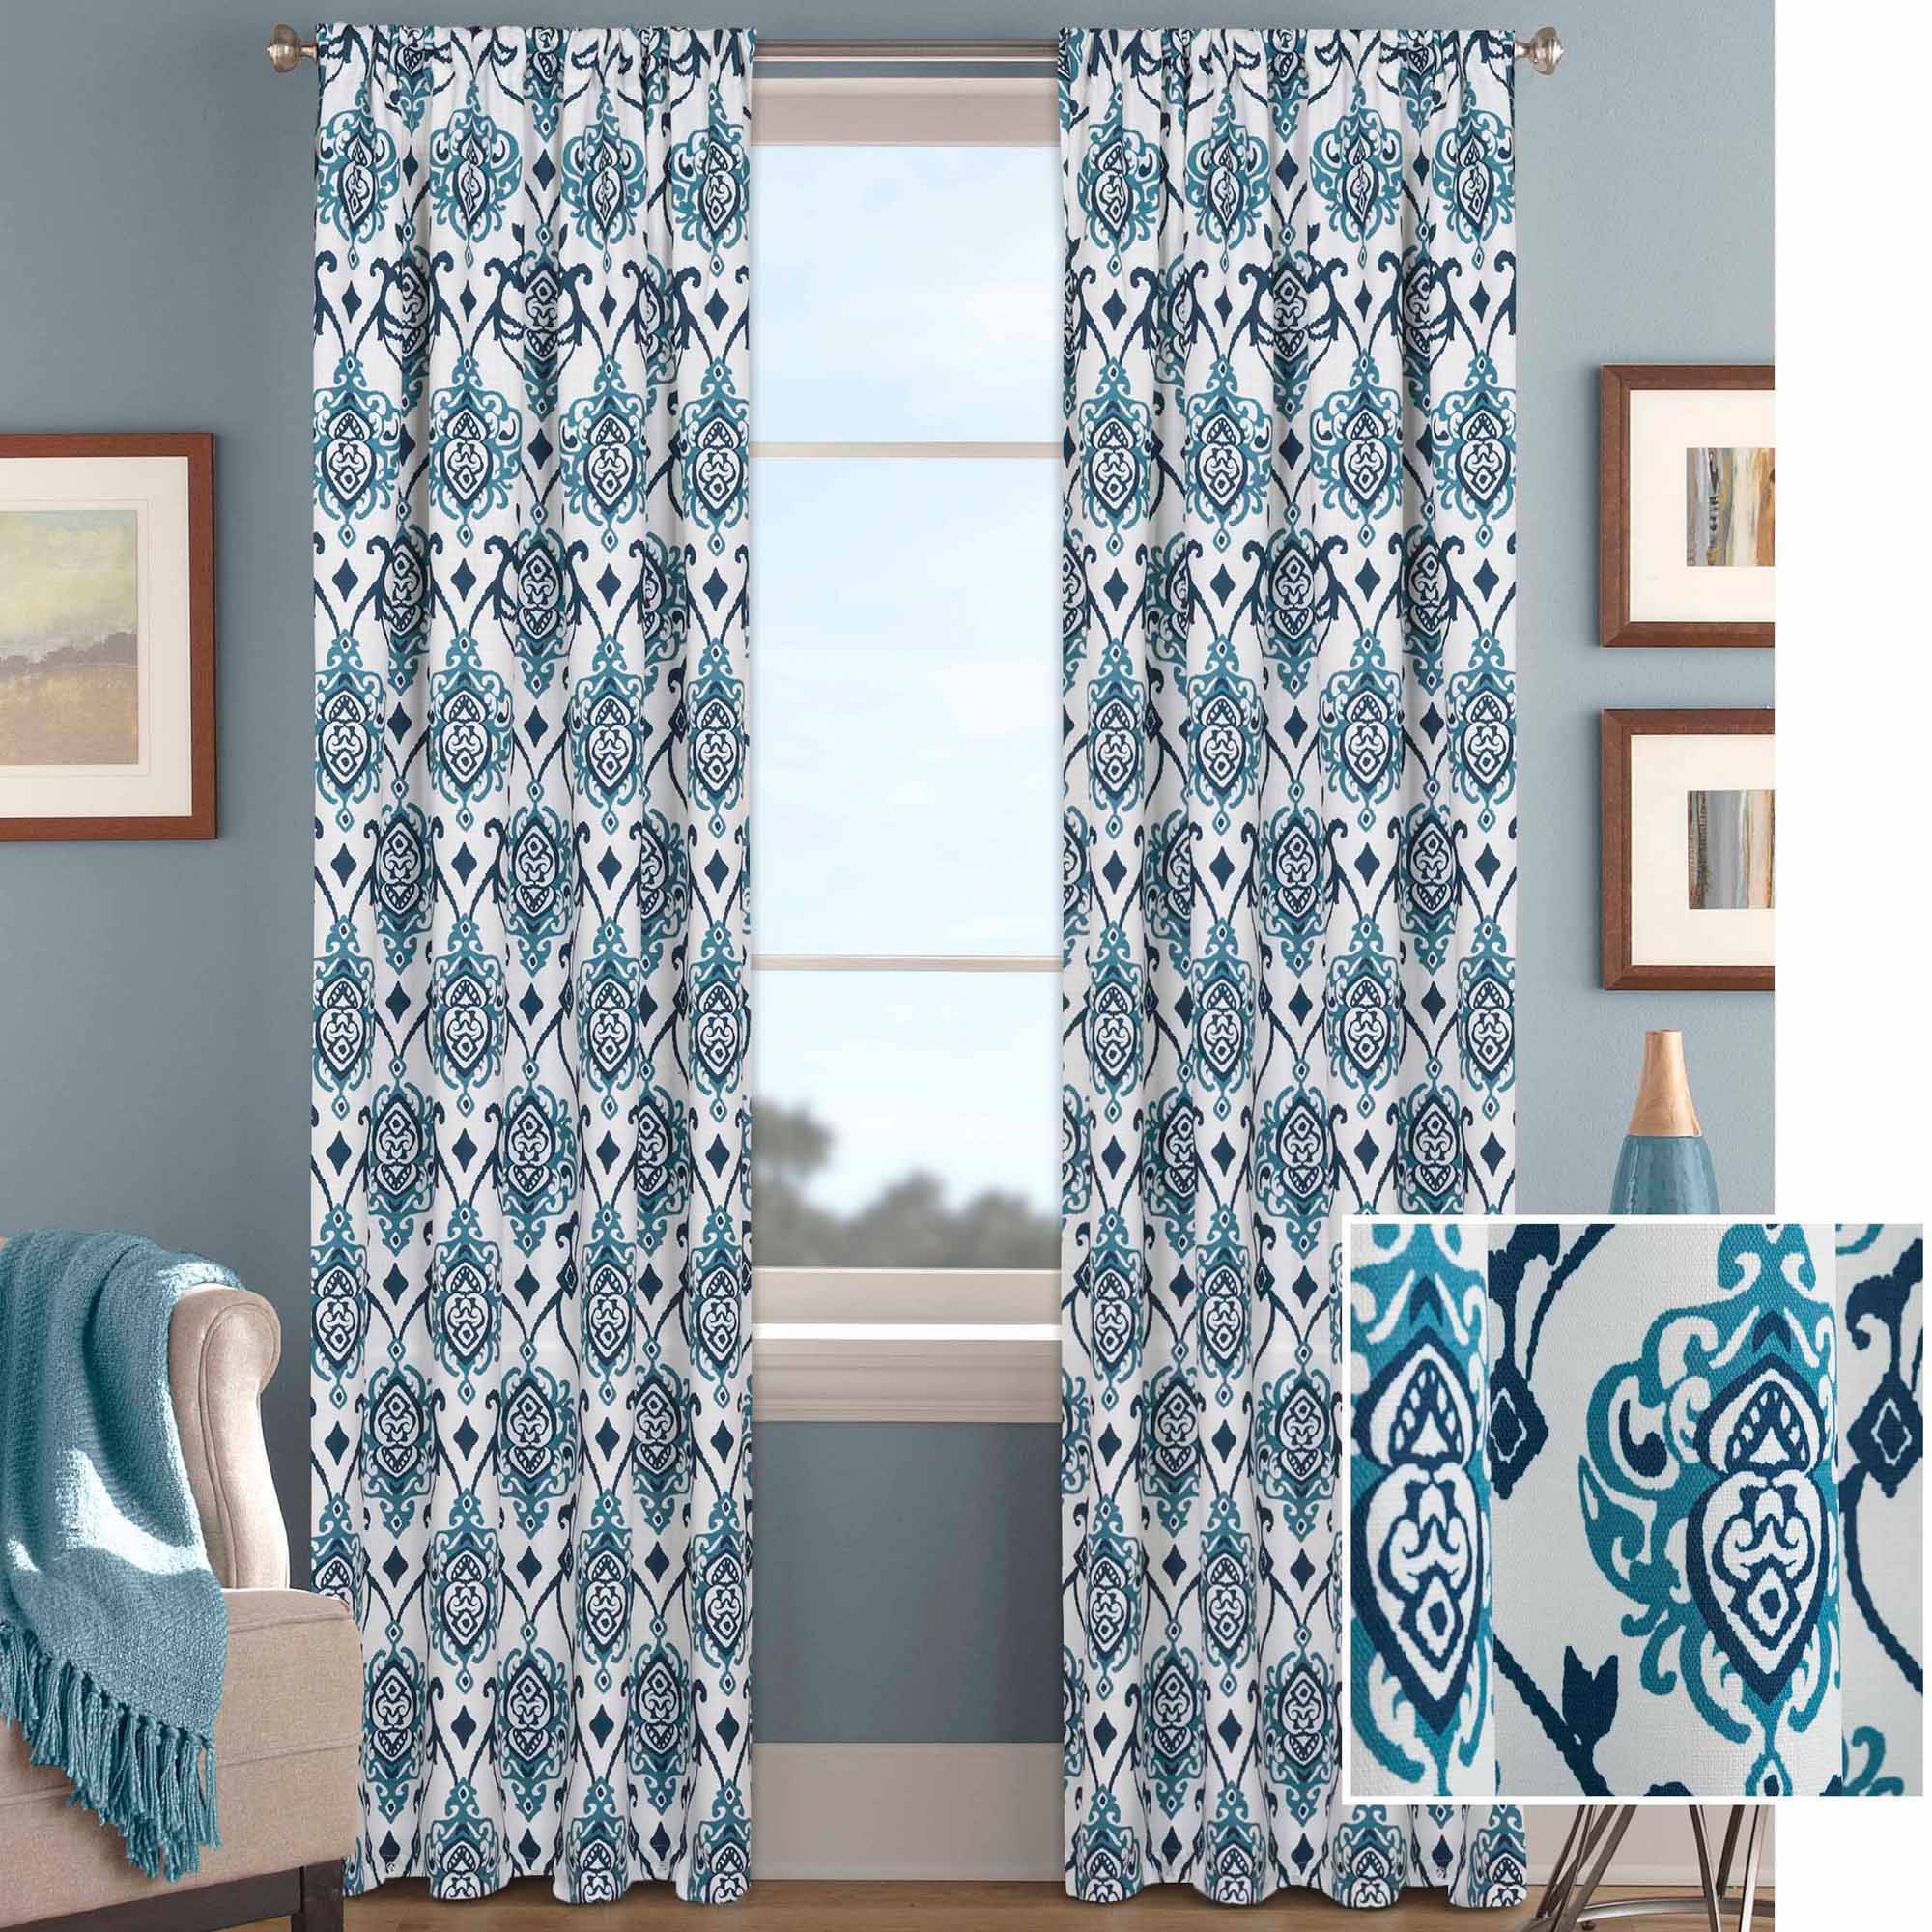 Better Homes and Gardens Damask Curtain Panel